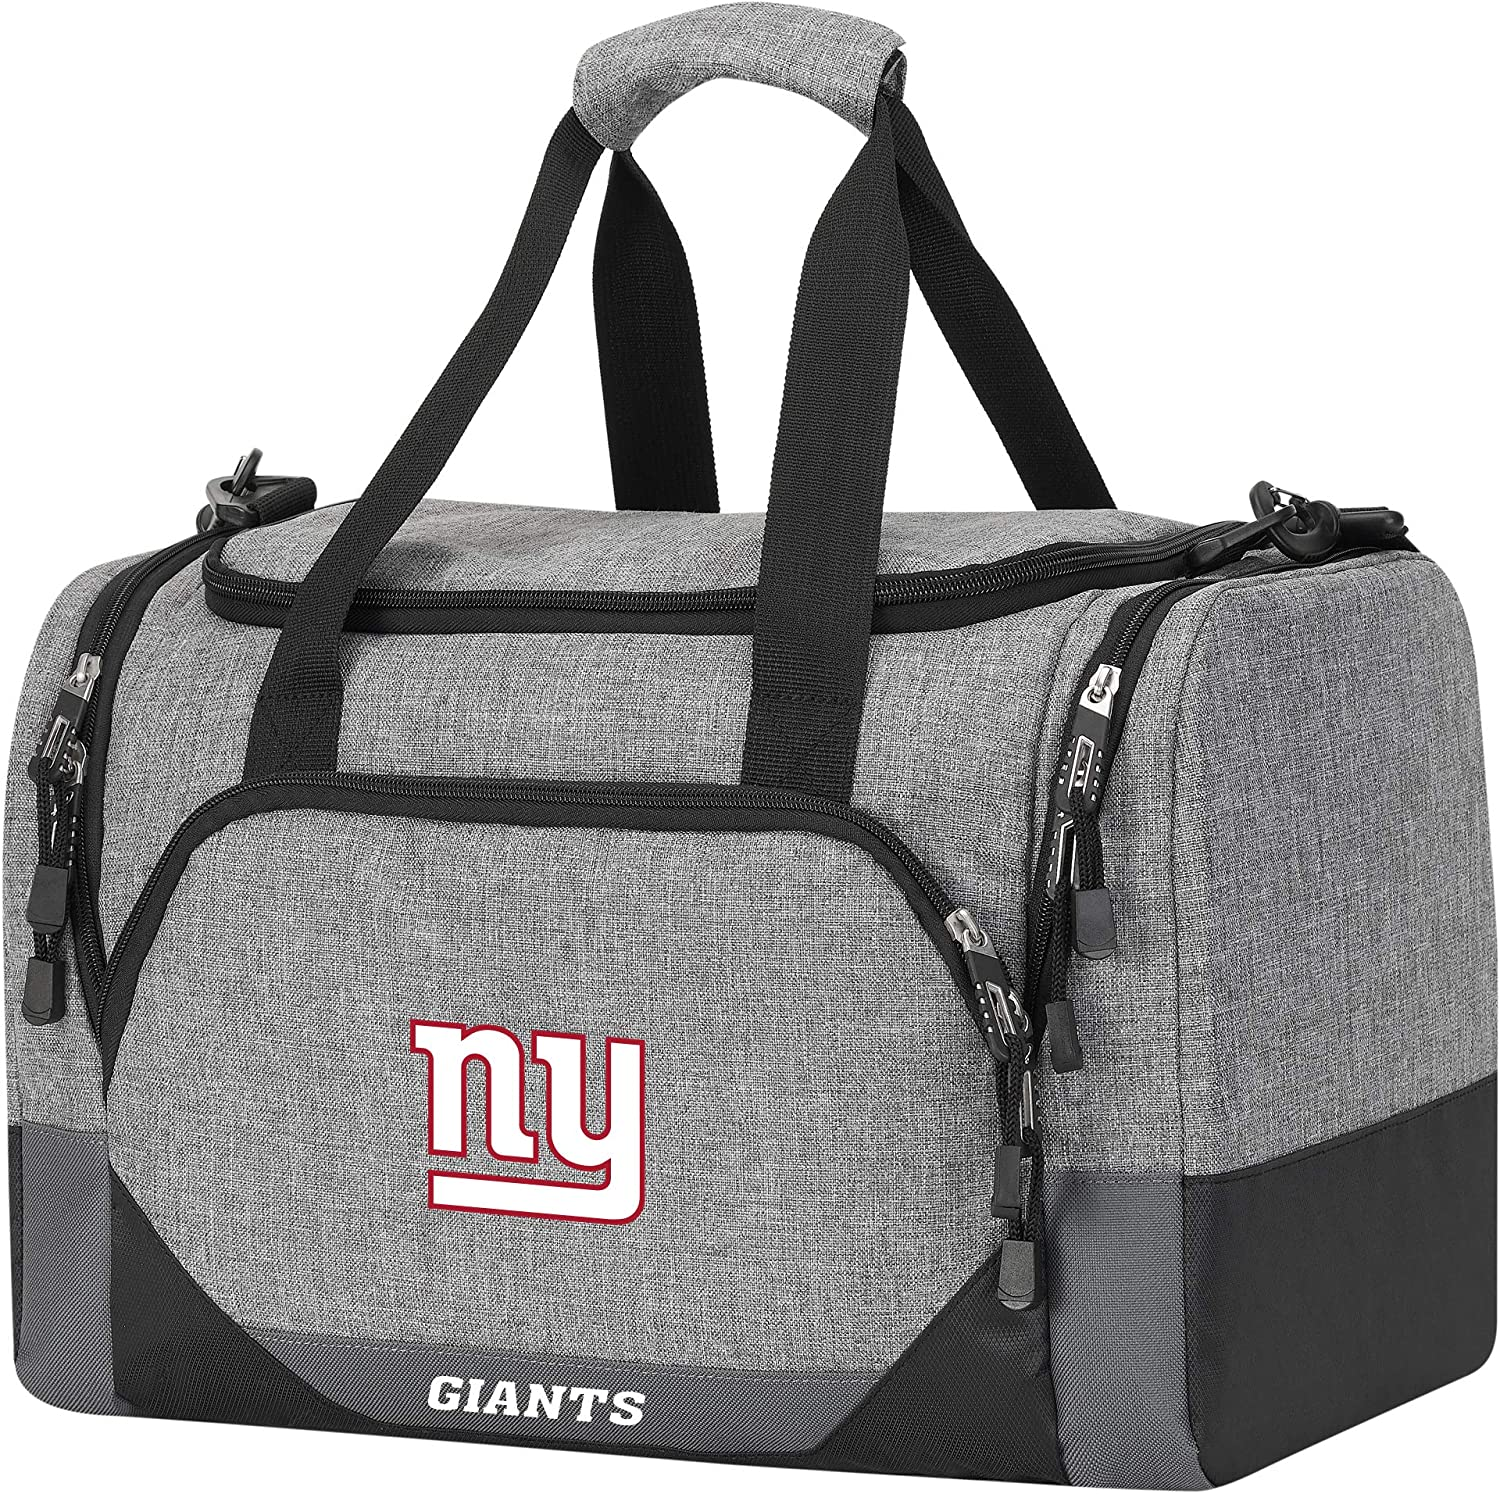 Grey 18 x 11 x 11 inches Officially Licensed NFL Terrain Duffel